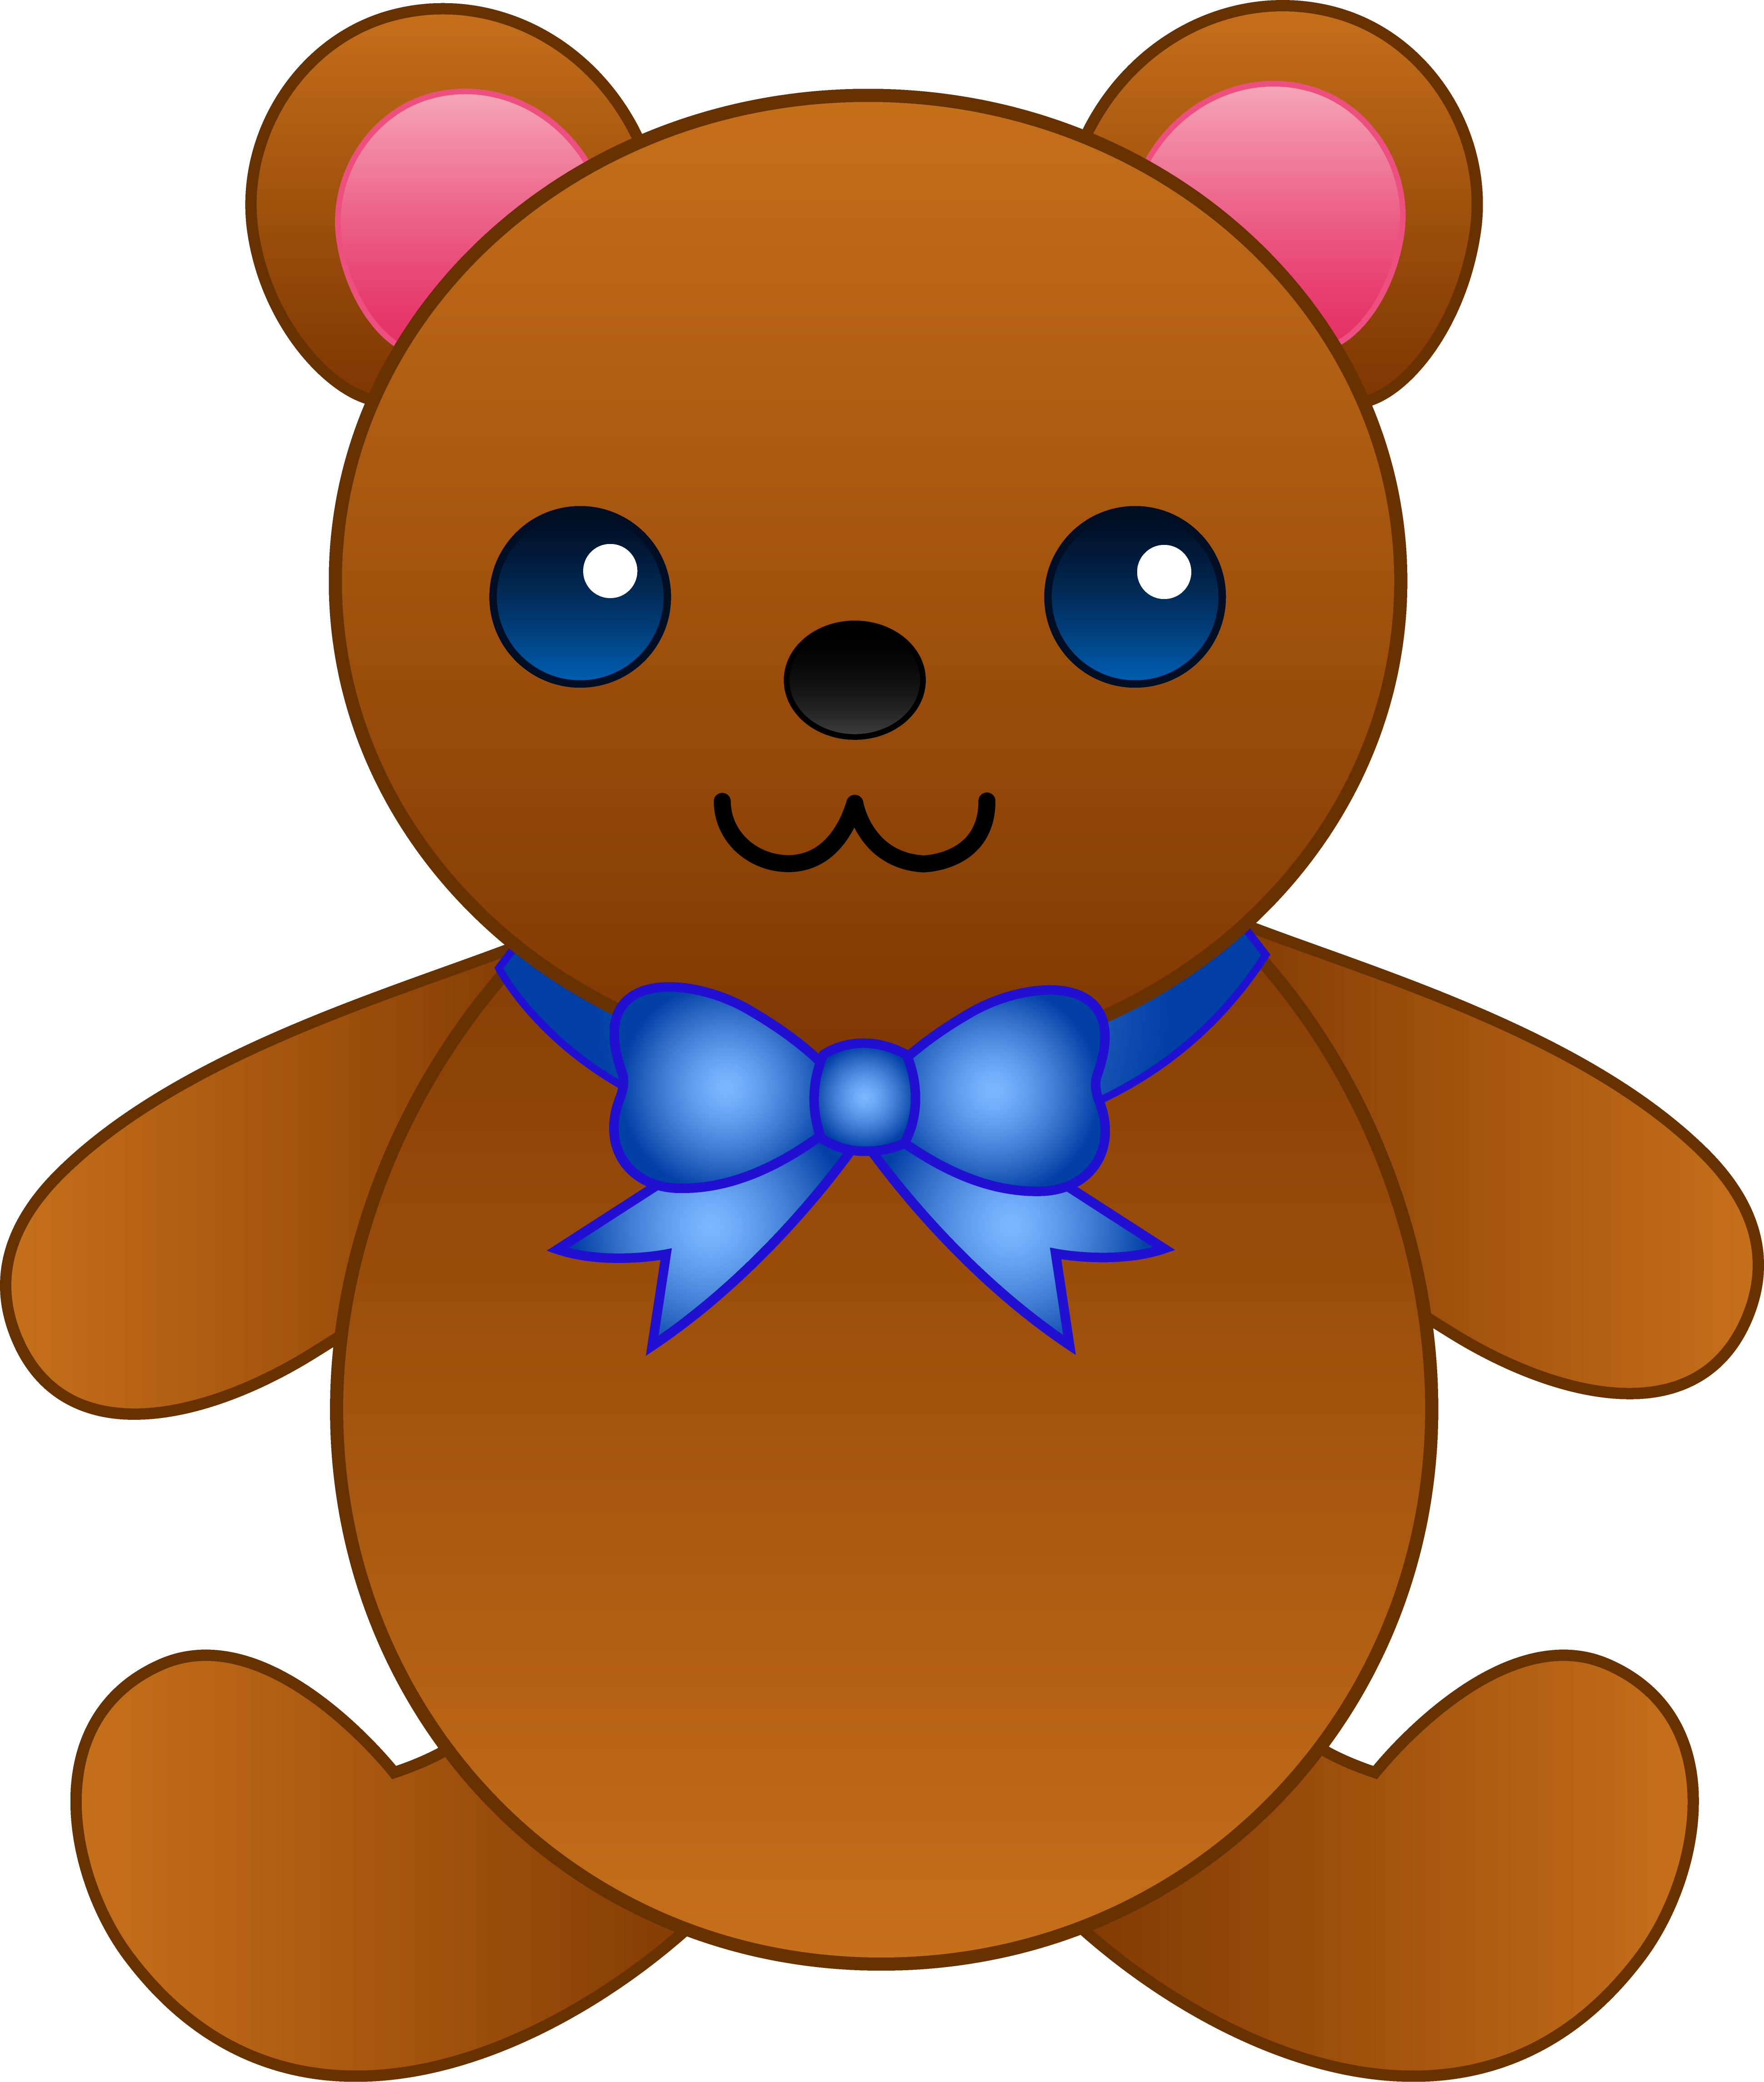 Pink Teddy Bear Clipart Free Clipart Ima-Pink teddy bear clipart free clipart images-10